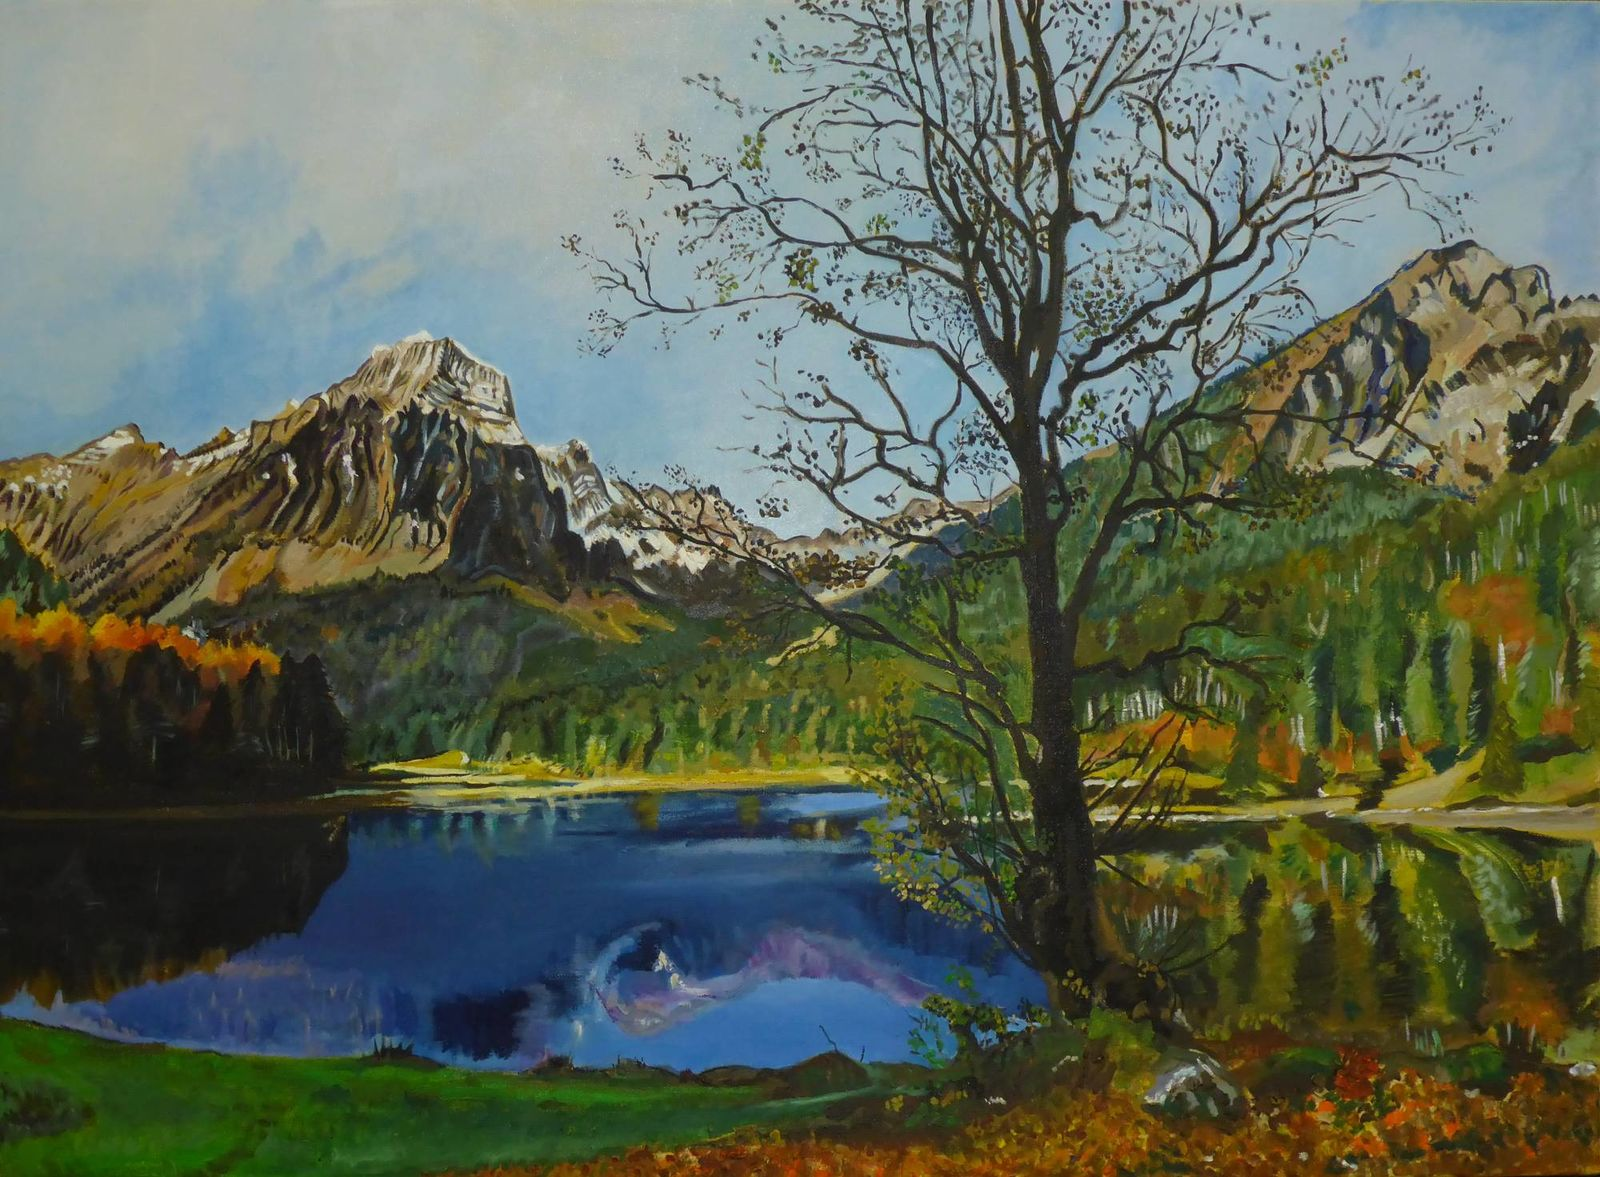 Obersee GL Herbst